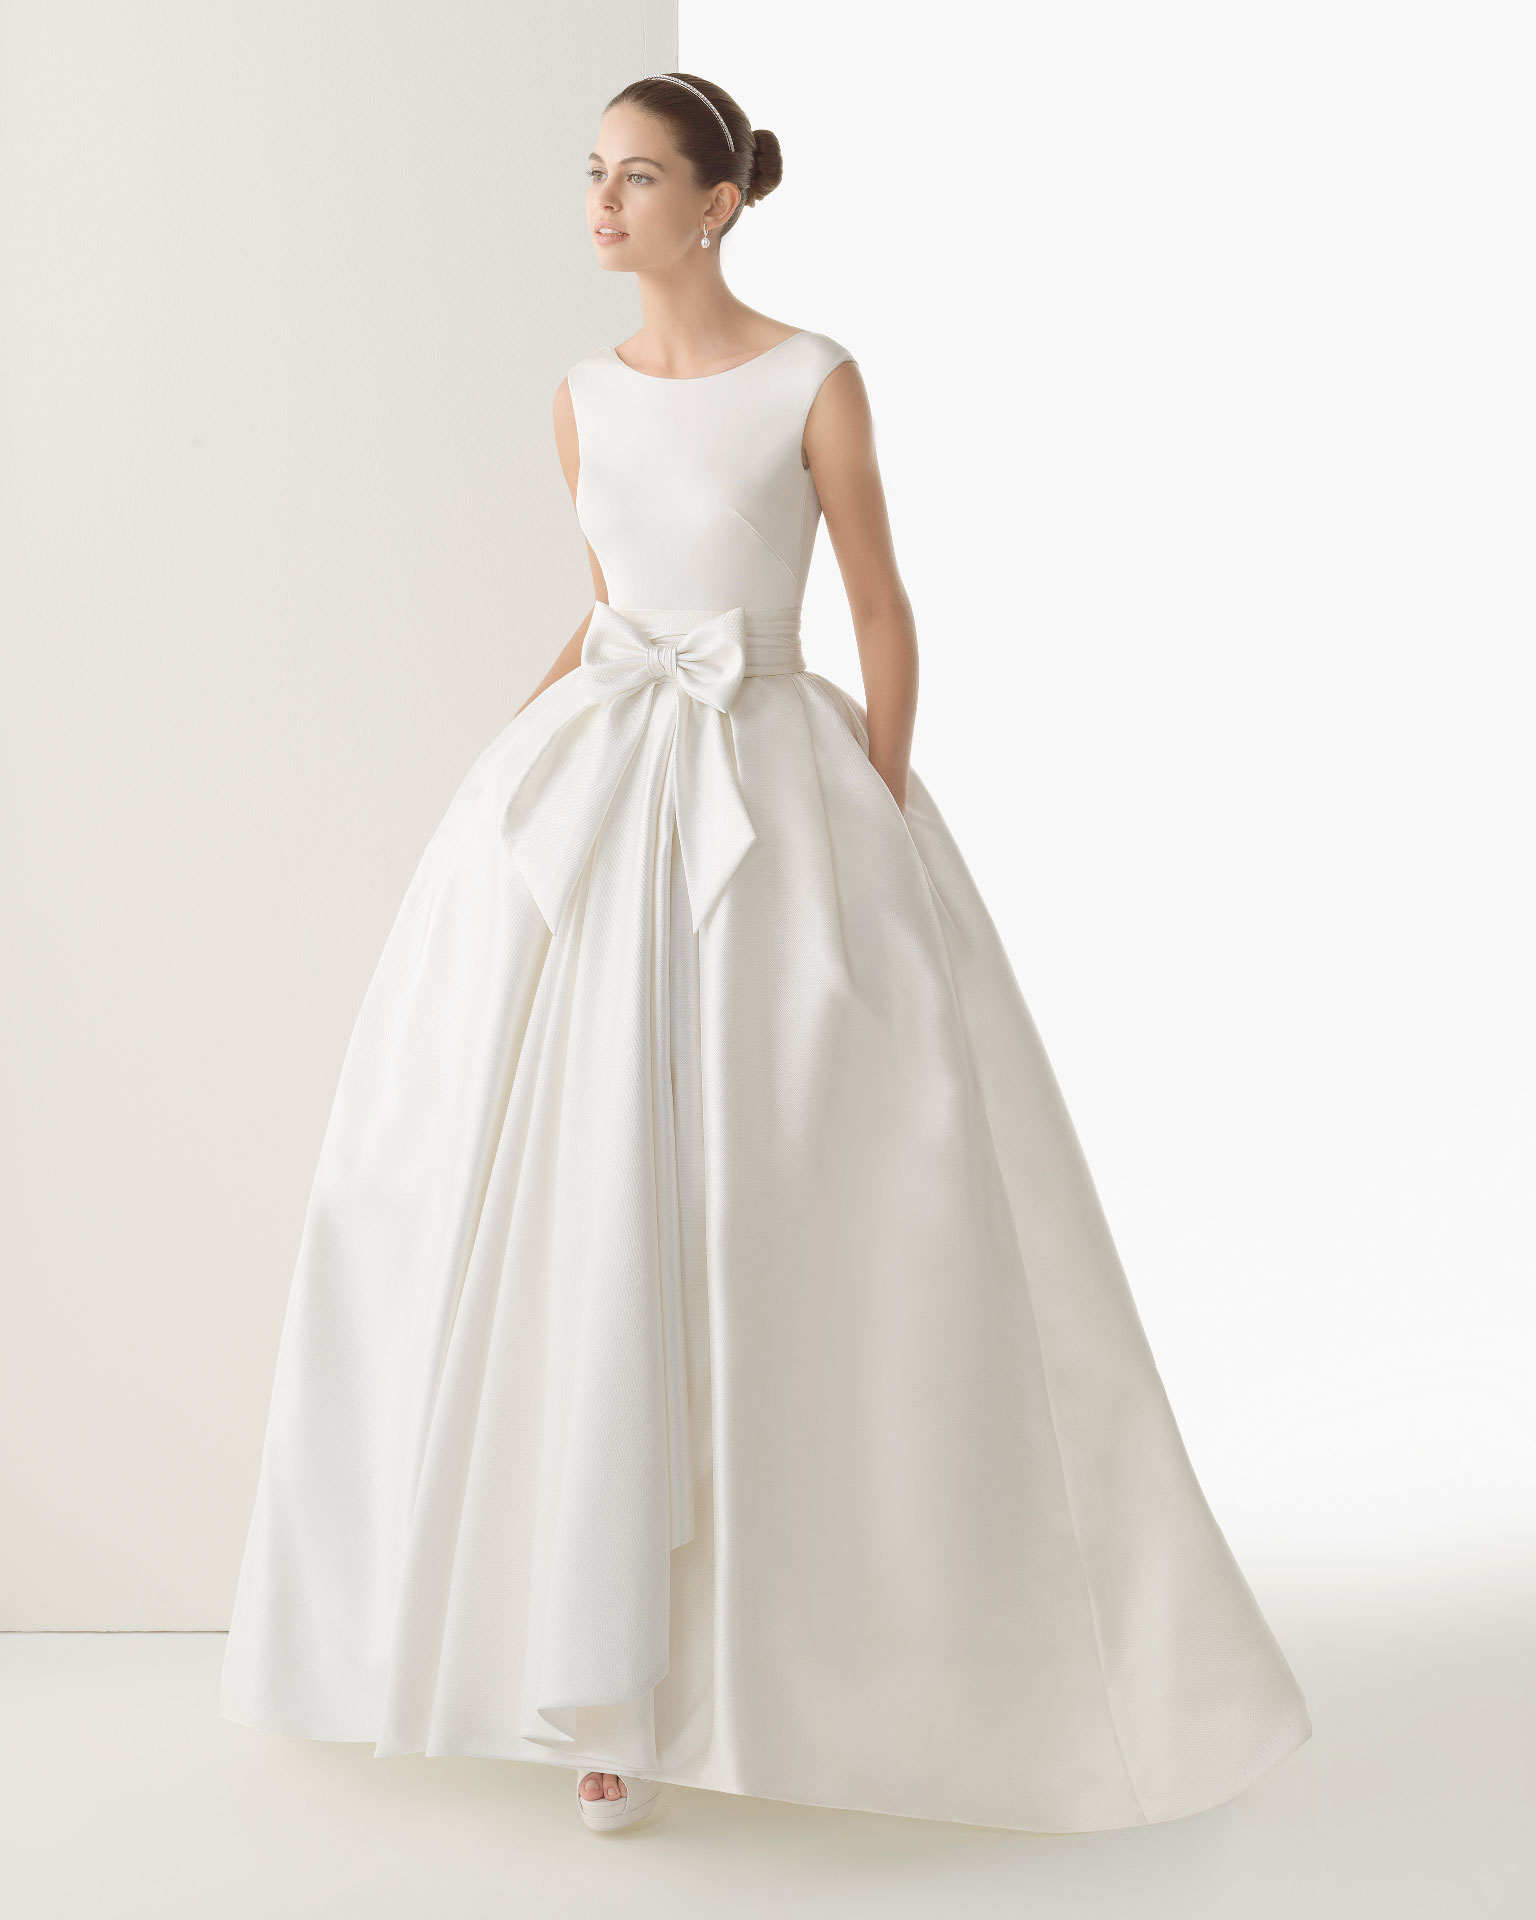 wedding dress with pockets and bow